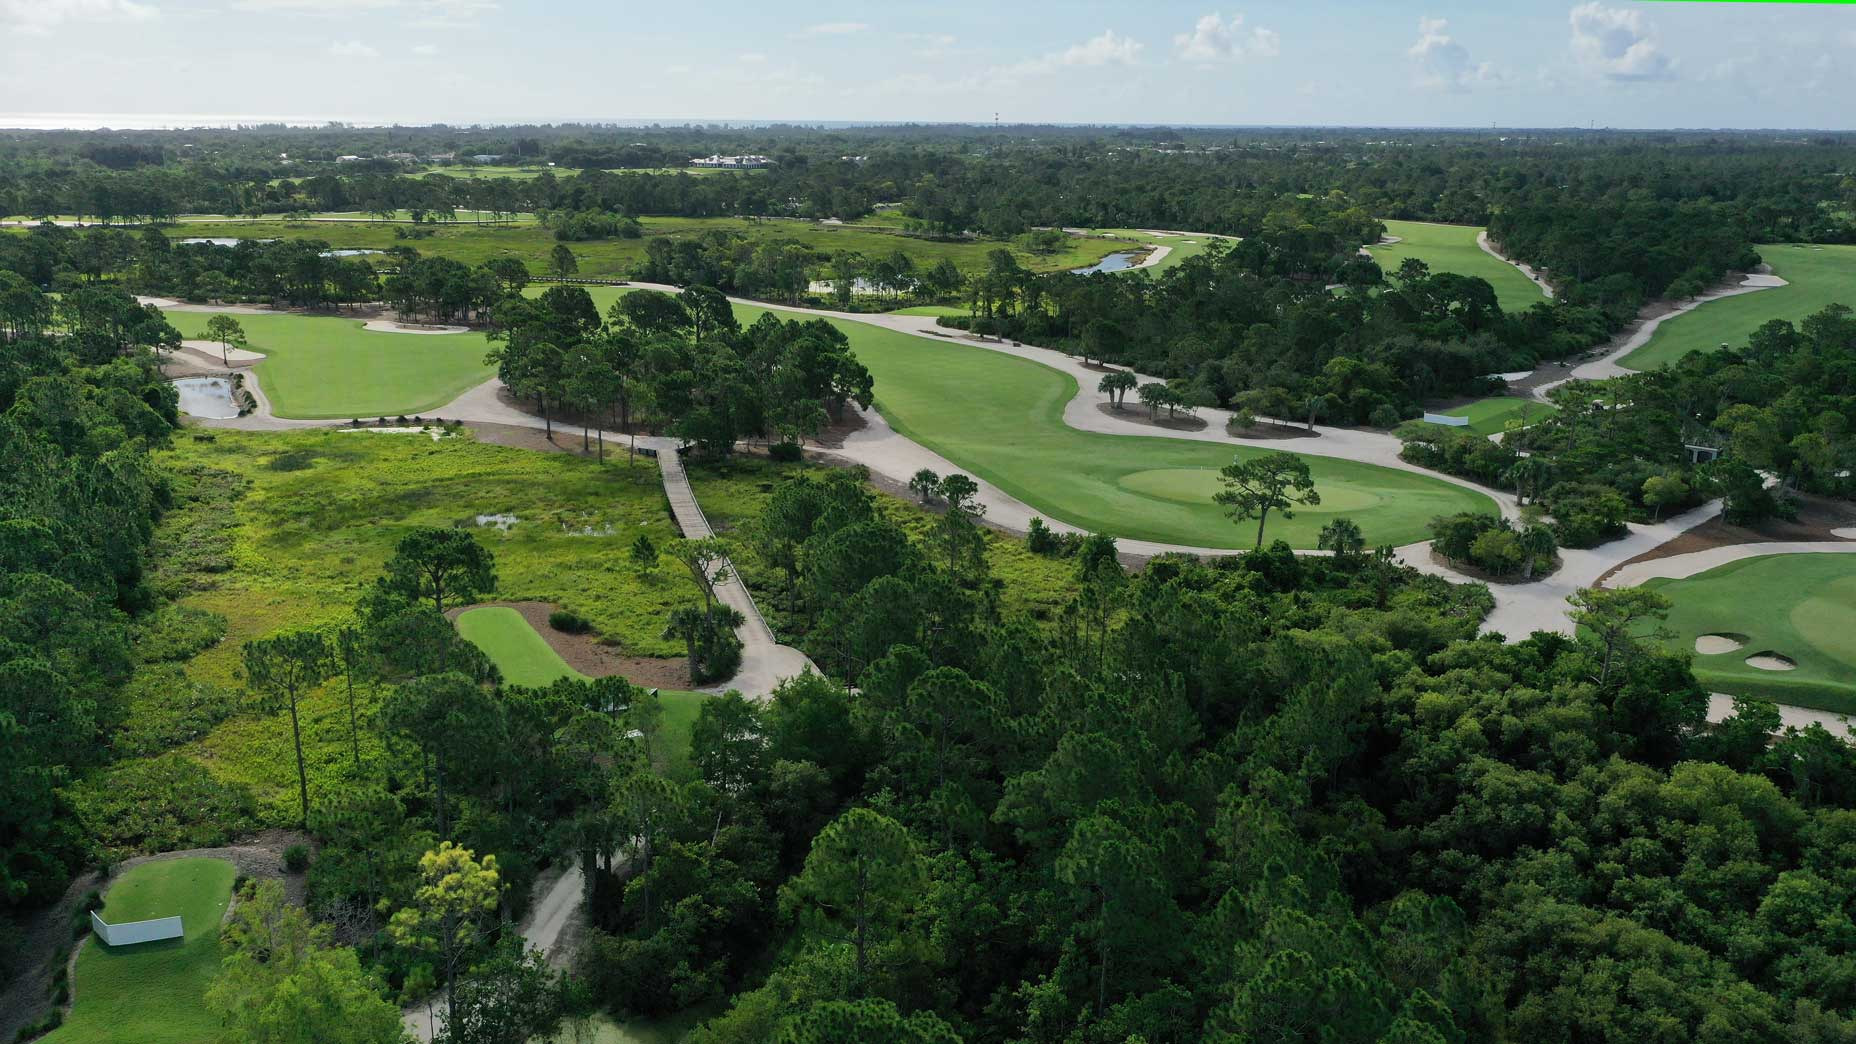 An aerial drone view of the 5th hole at Medalist Golf Club.